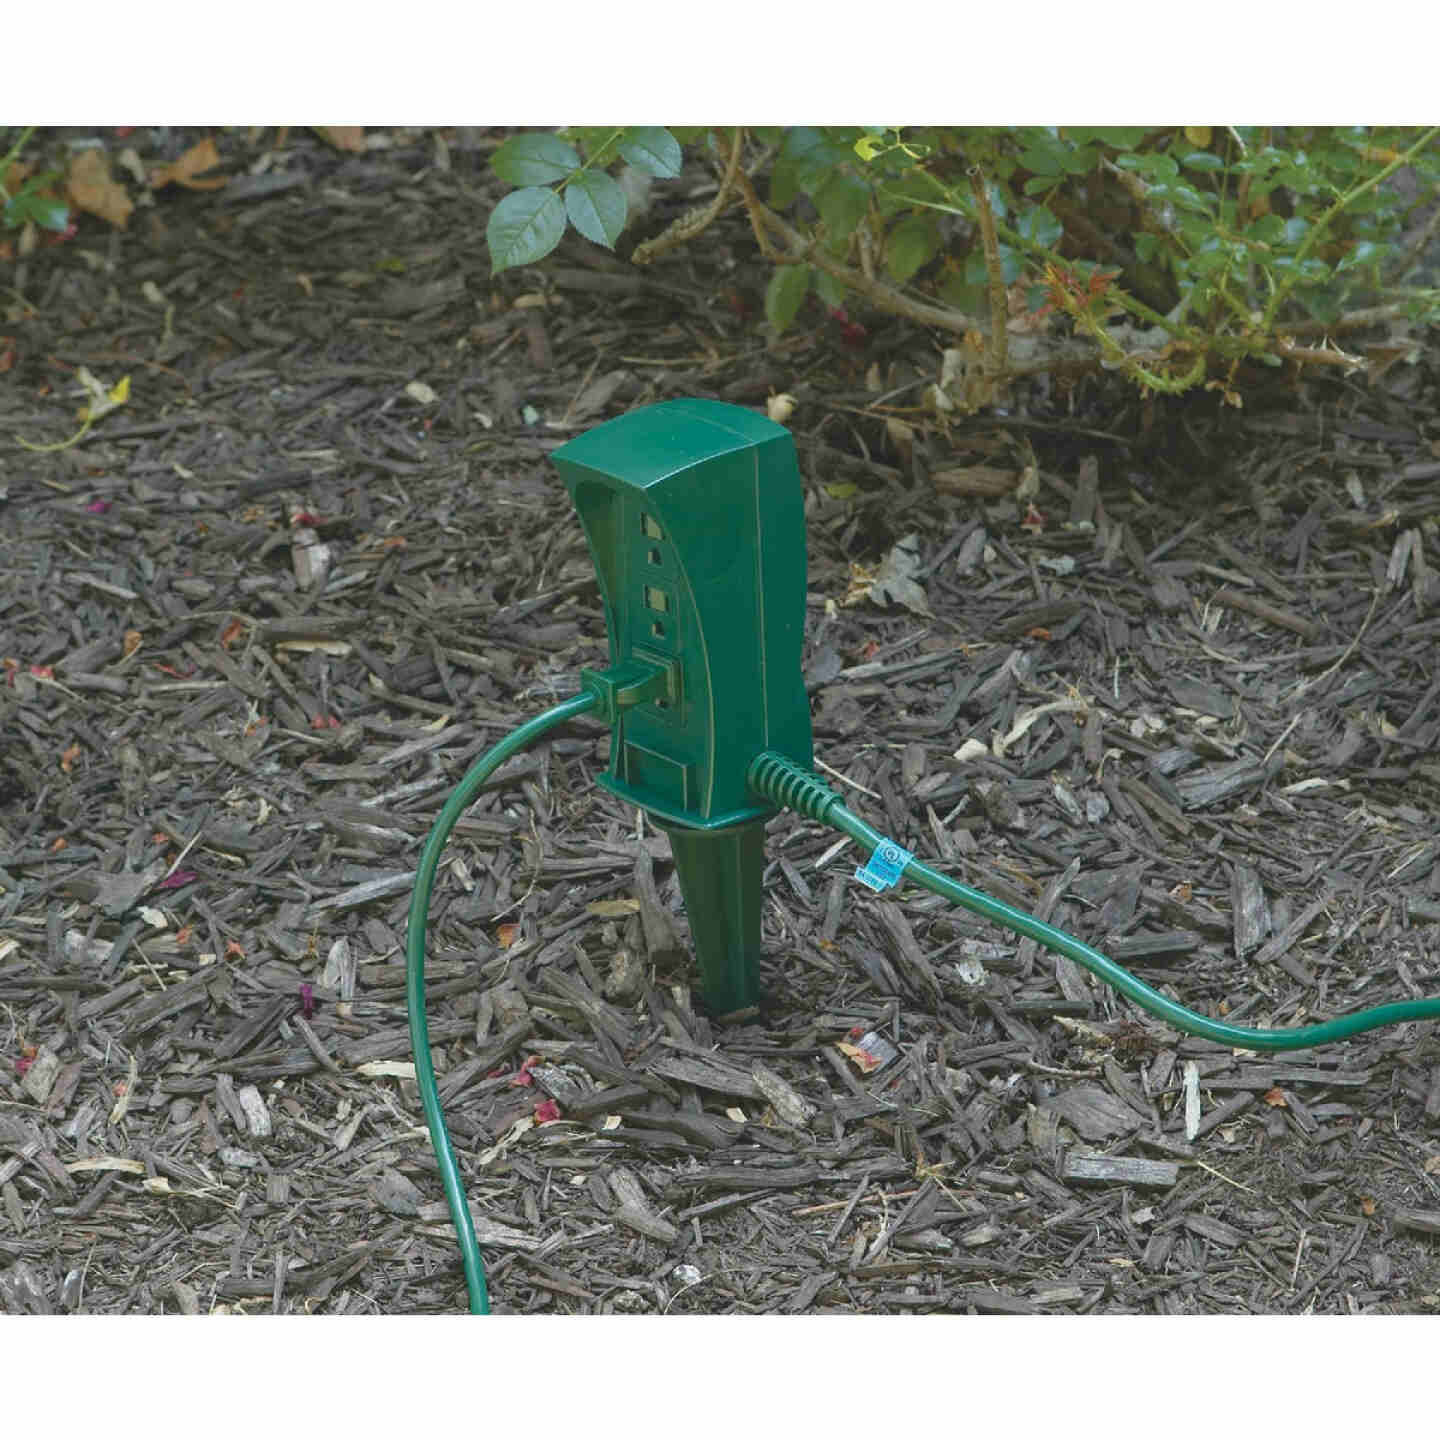 Do it 3-Outlet 13A Outdoor Power Stake with 6 Ft. Cord Image 2